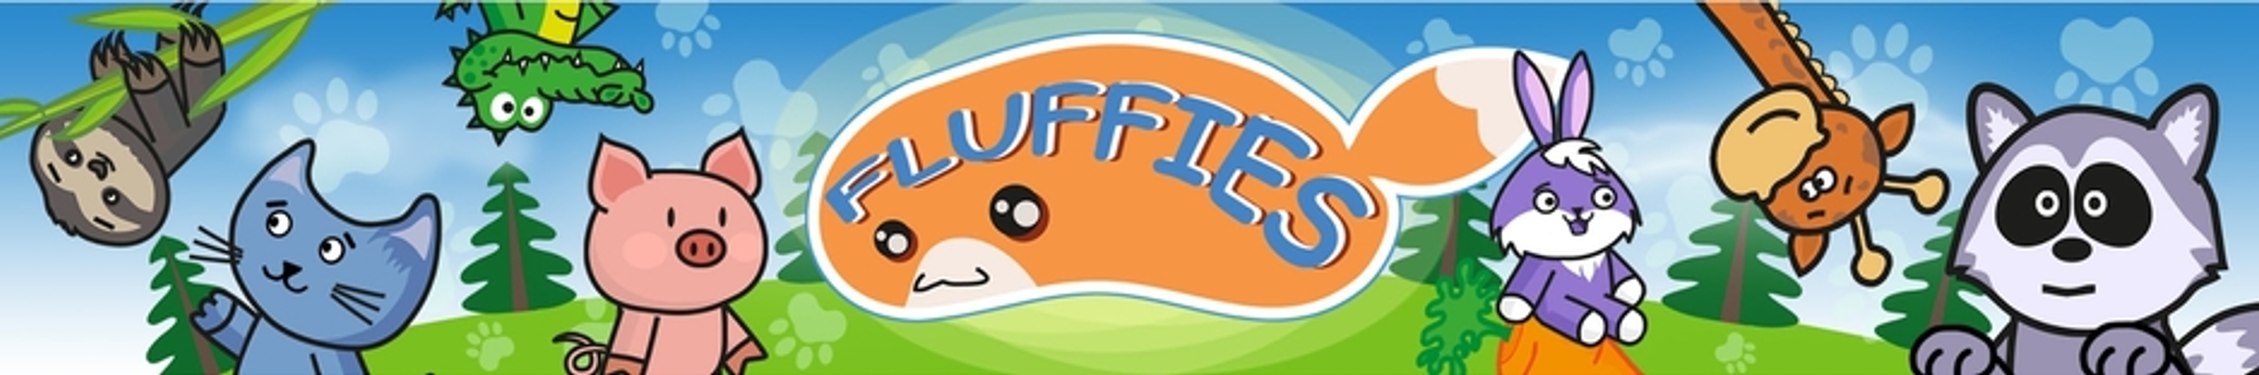 Fluffies Animals Cartoons